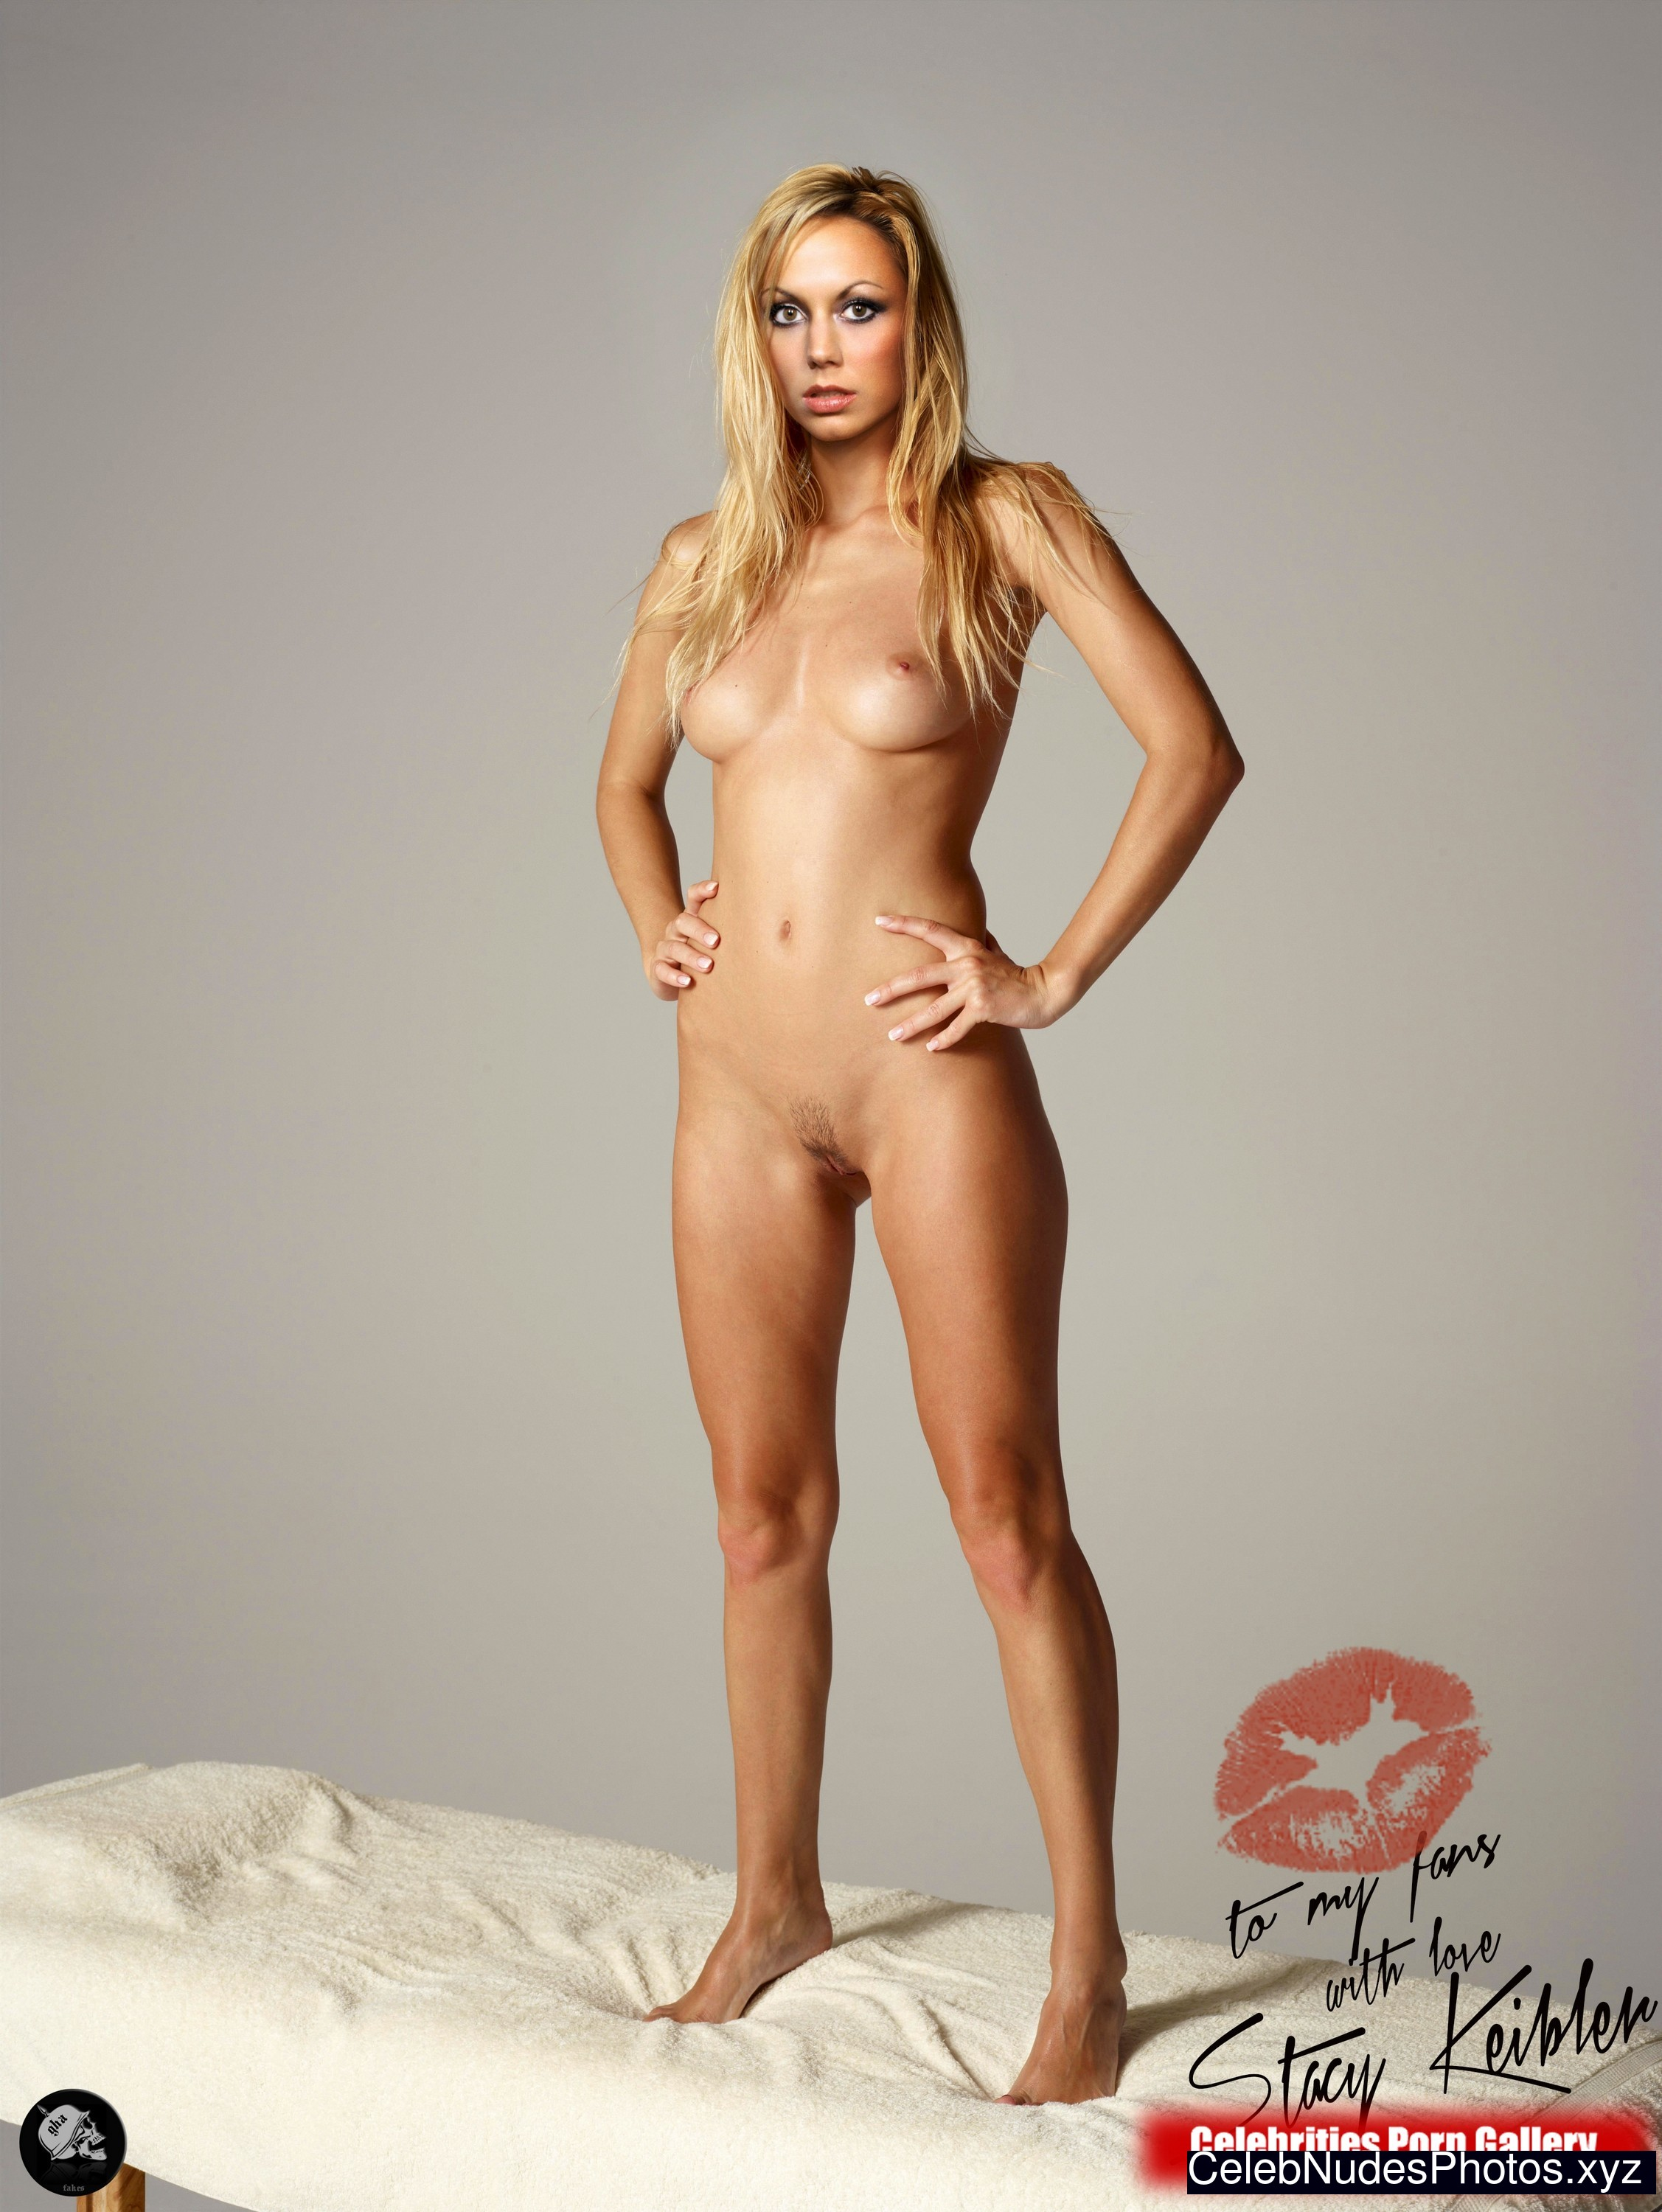 stacy keibler nude leaked photos